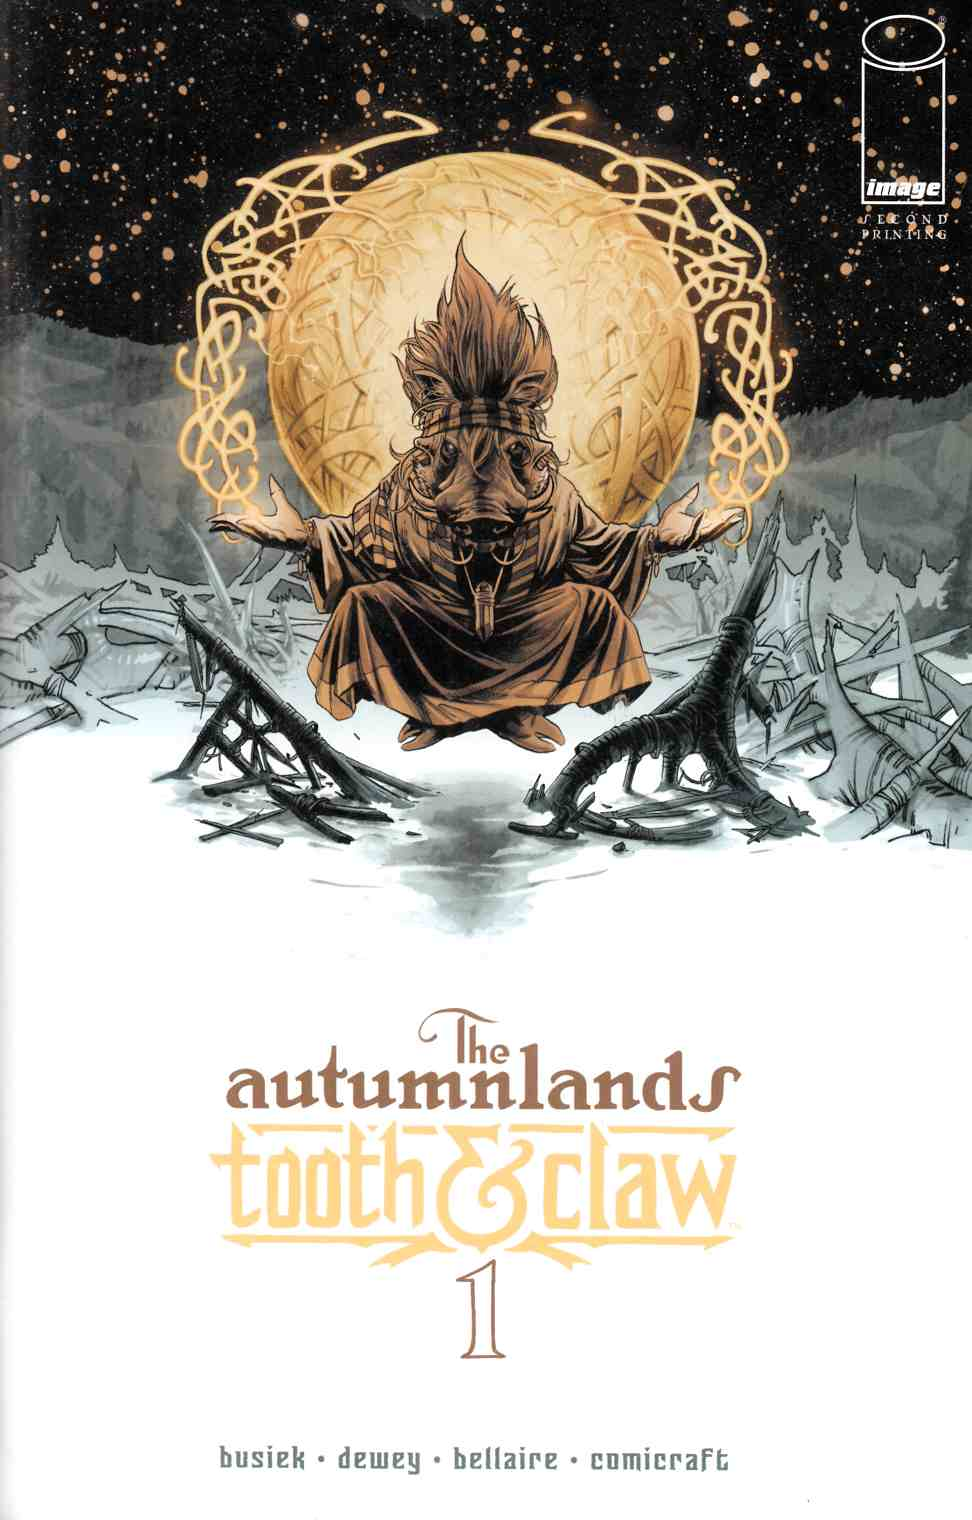 Autumnlands Tooth & Claw #1 Second Printing [Image Comic]